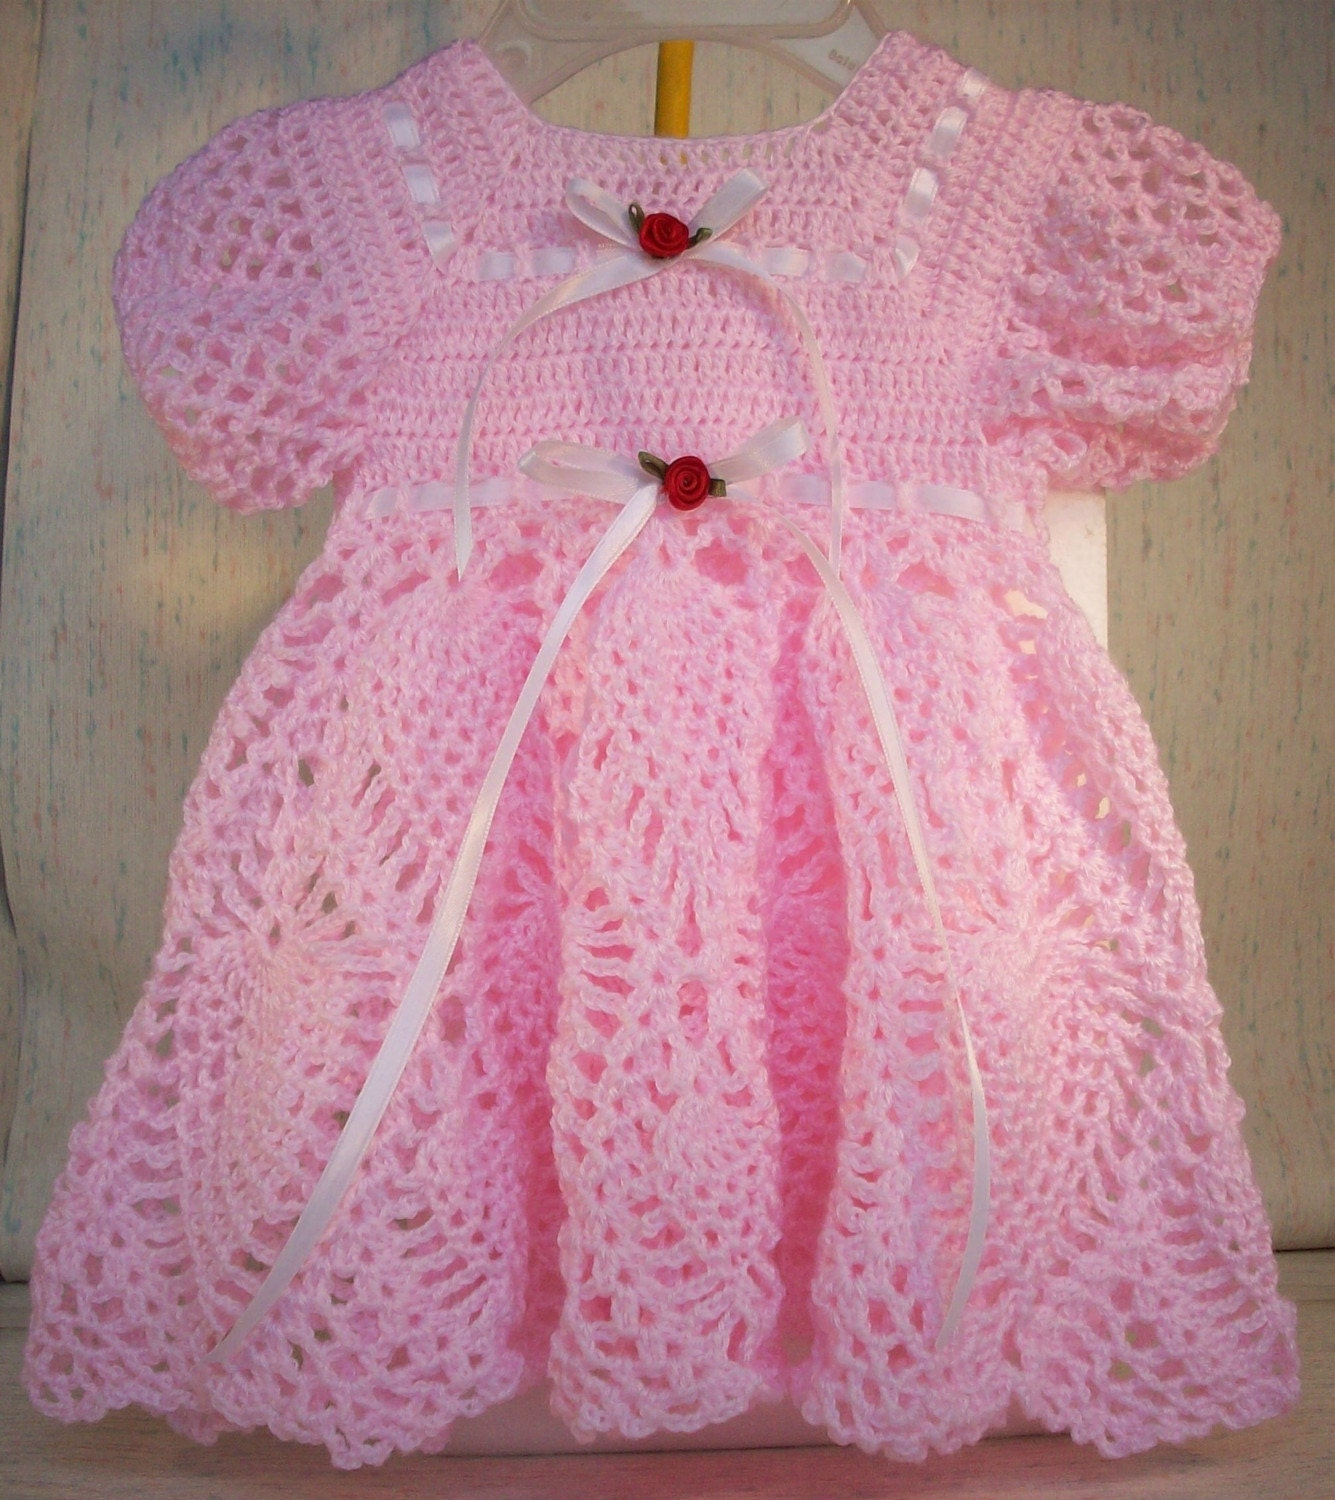 Heirloom Crocheted Baby Dress with Pineapple by